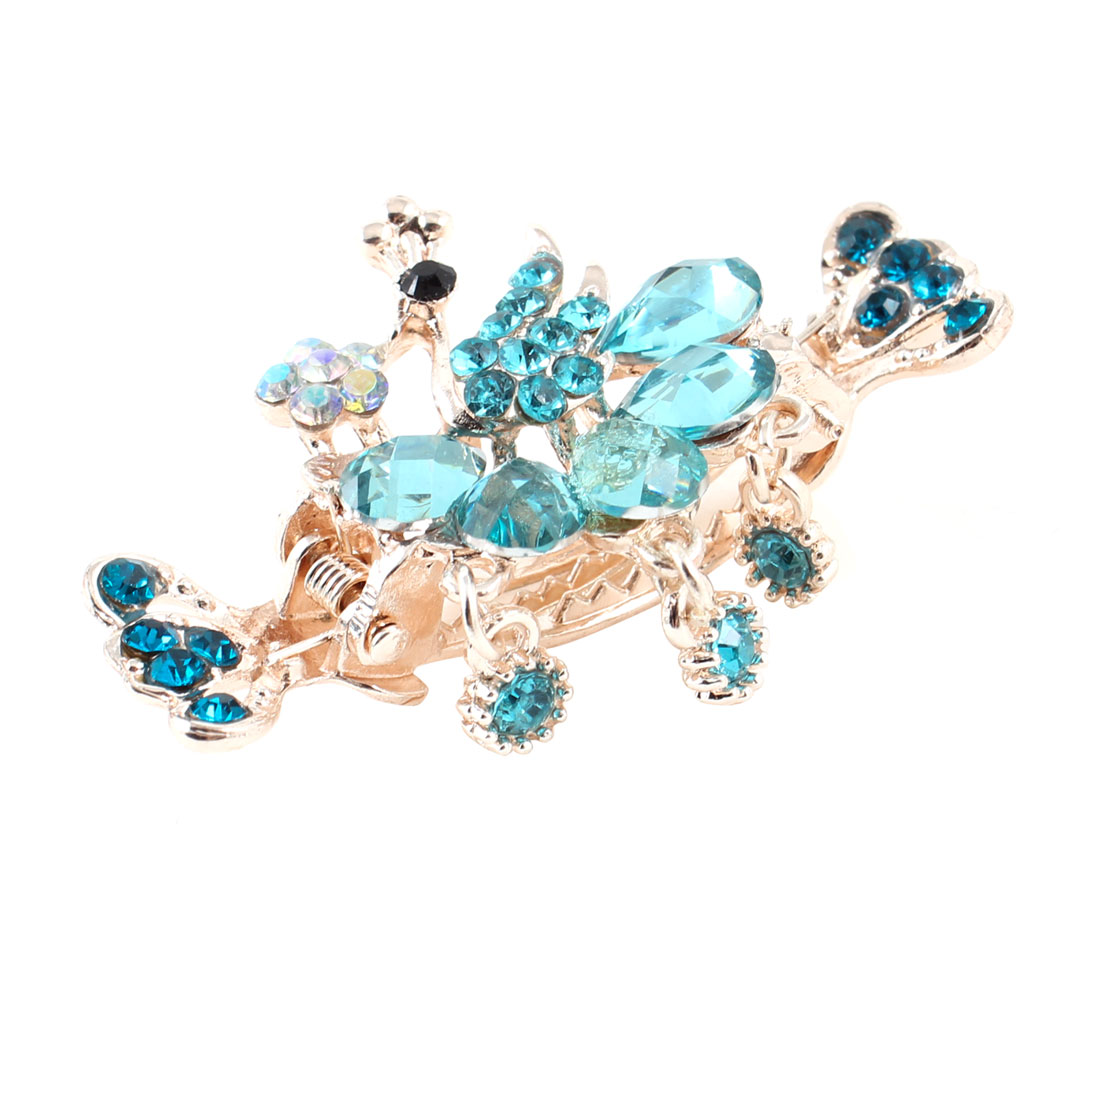 Lady Bling Rhinestones Inlaid Peacock Design Hair Claw Clip